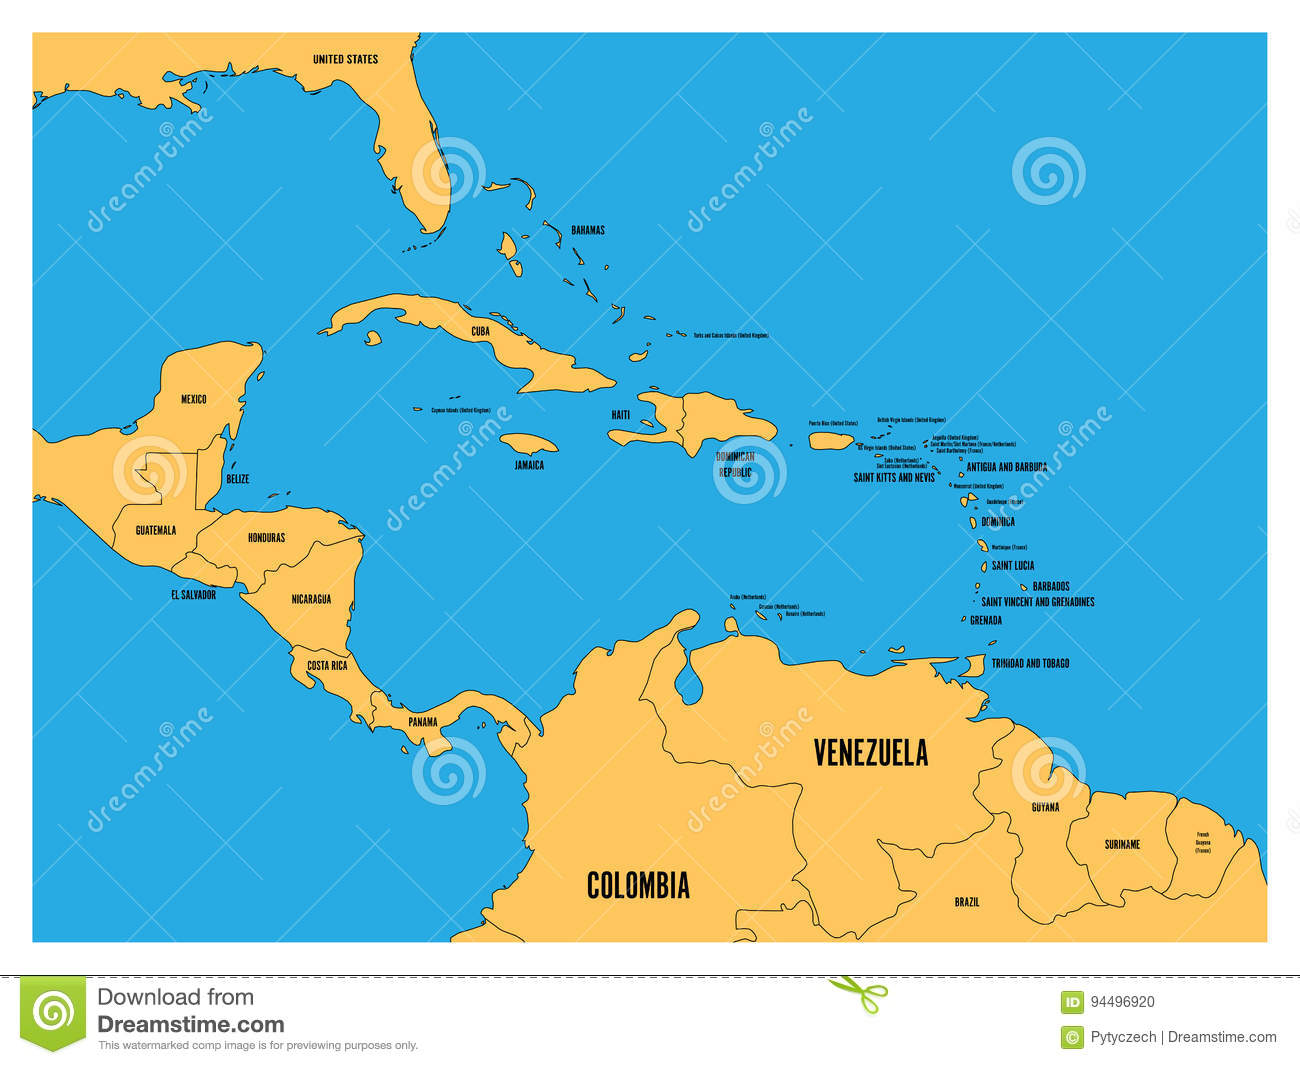 Central america and carribean states political map yellow land with royalty free vector download central america and carribean states political map yellow land with black country names labels gumiabroncs Images